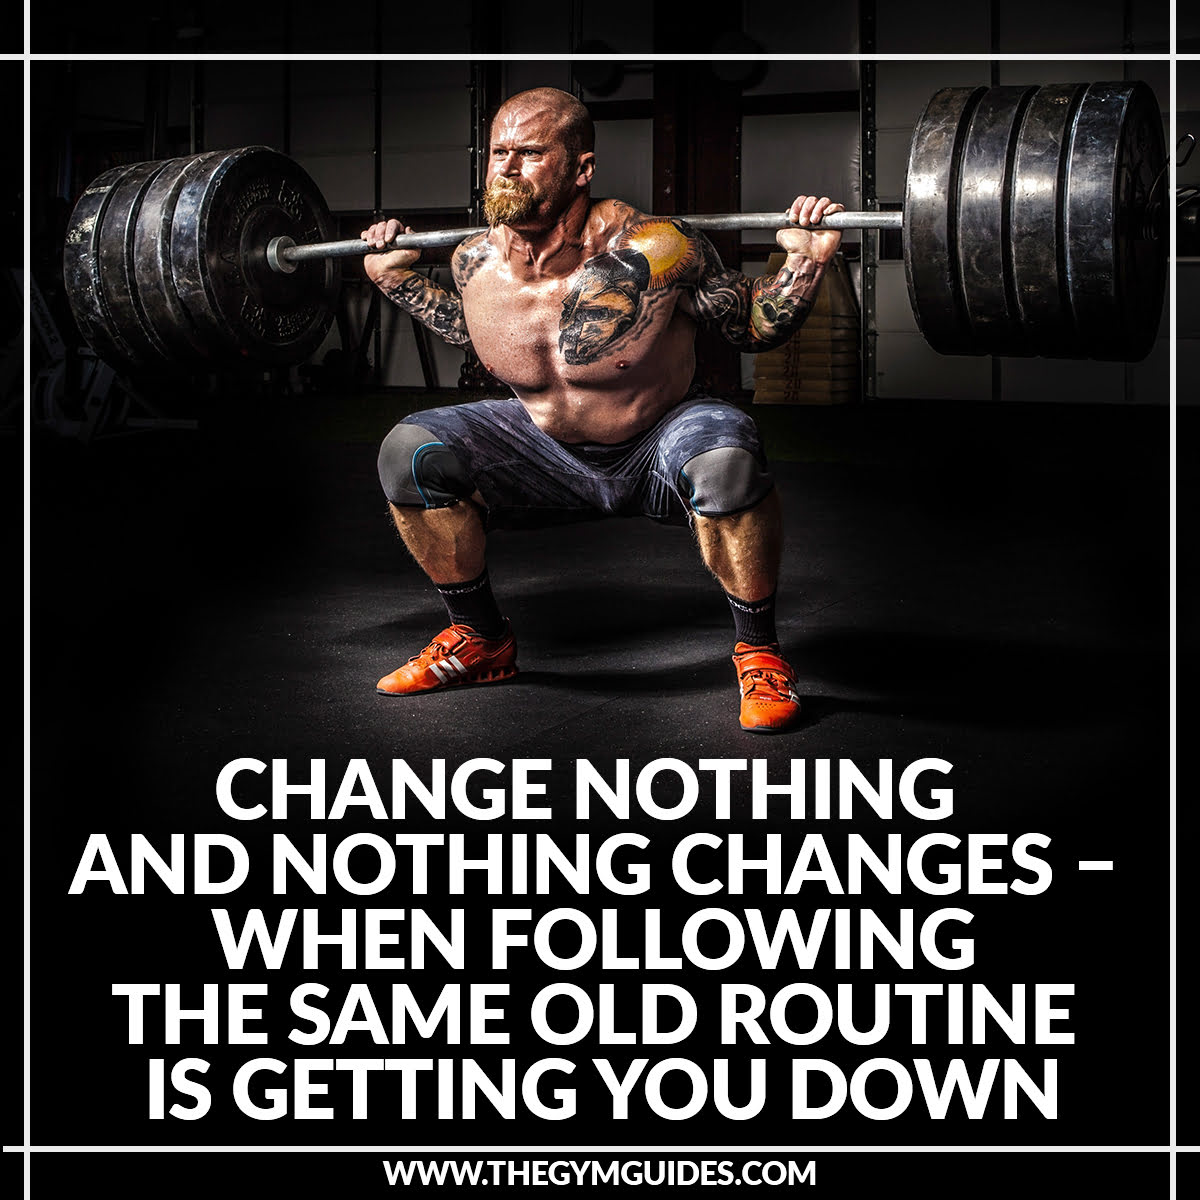 Change Nothing and Nothing Changes – when following the same old routine is getting you down